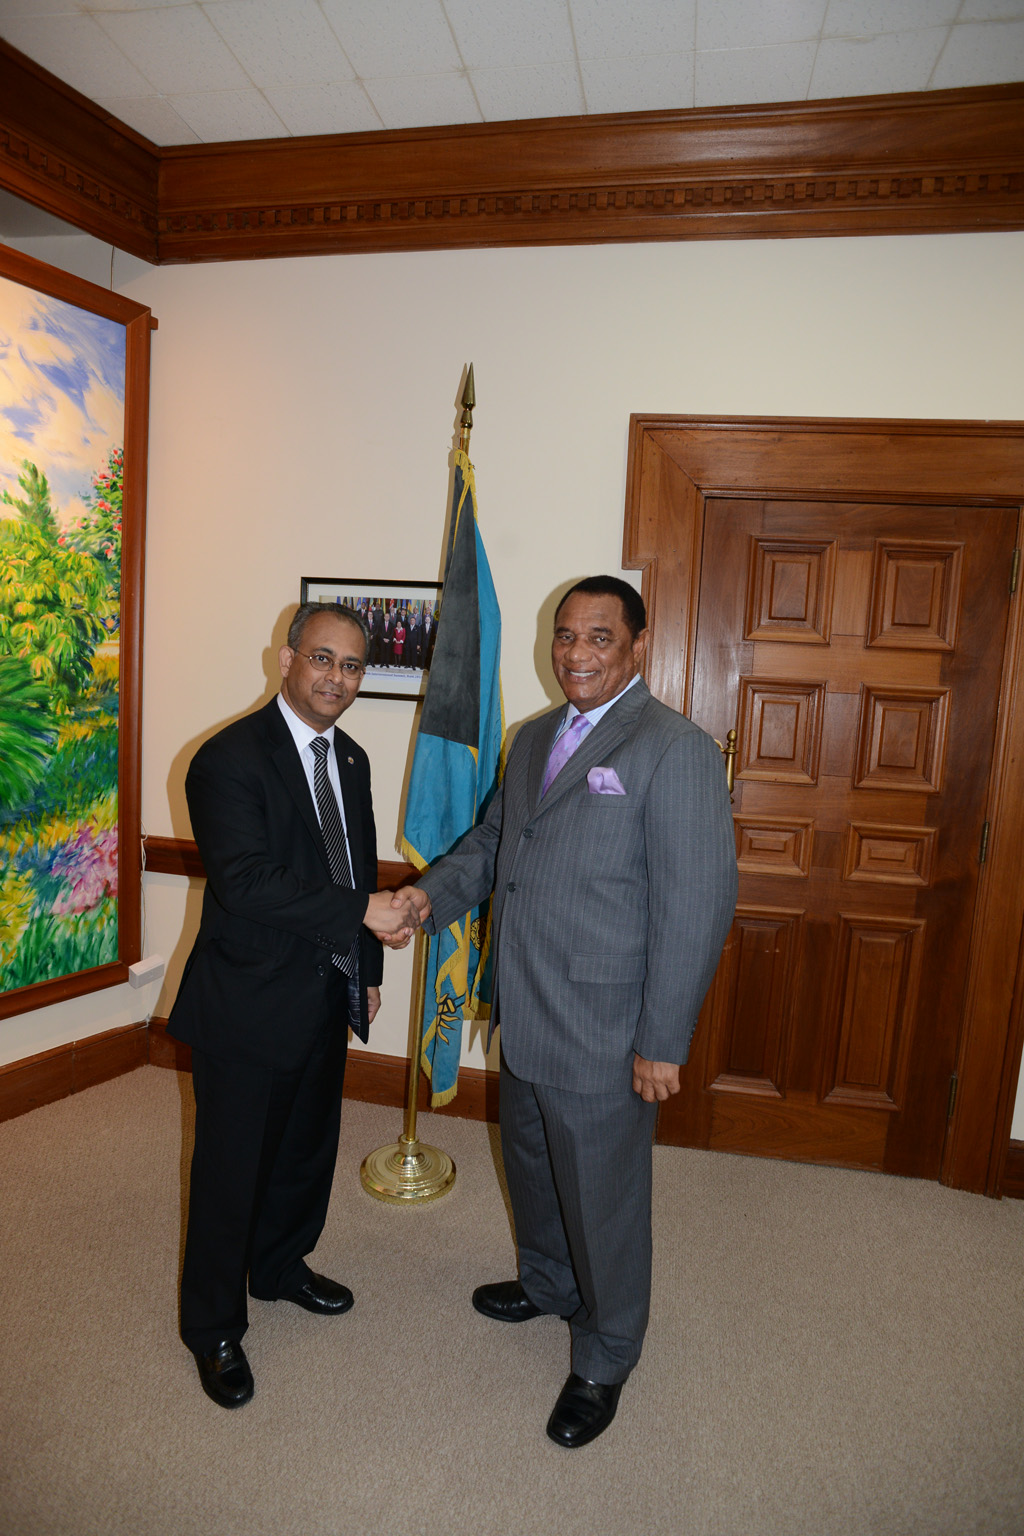 The Assistant Secretary General of the Organization of American States (OAS), Ambassador Albert Ramdin visits with the Prime Minister of The Bahamas, Rt. Hon. Perry G Christie-Nassau, Bahamas April 23rd, 2013